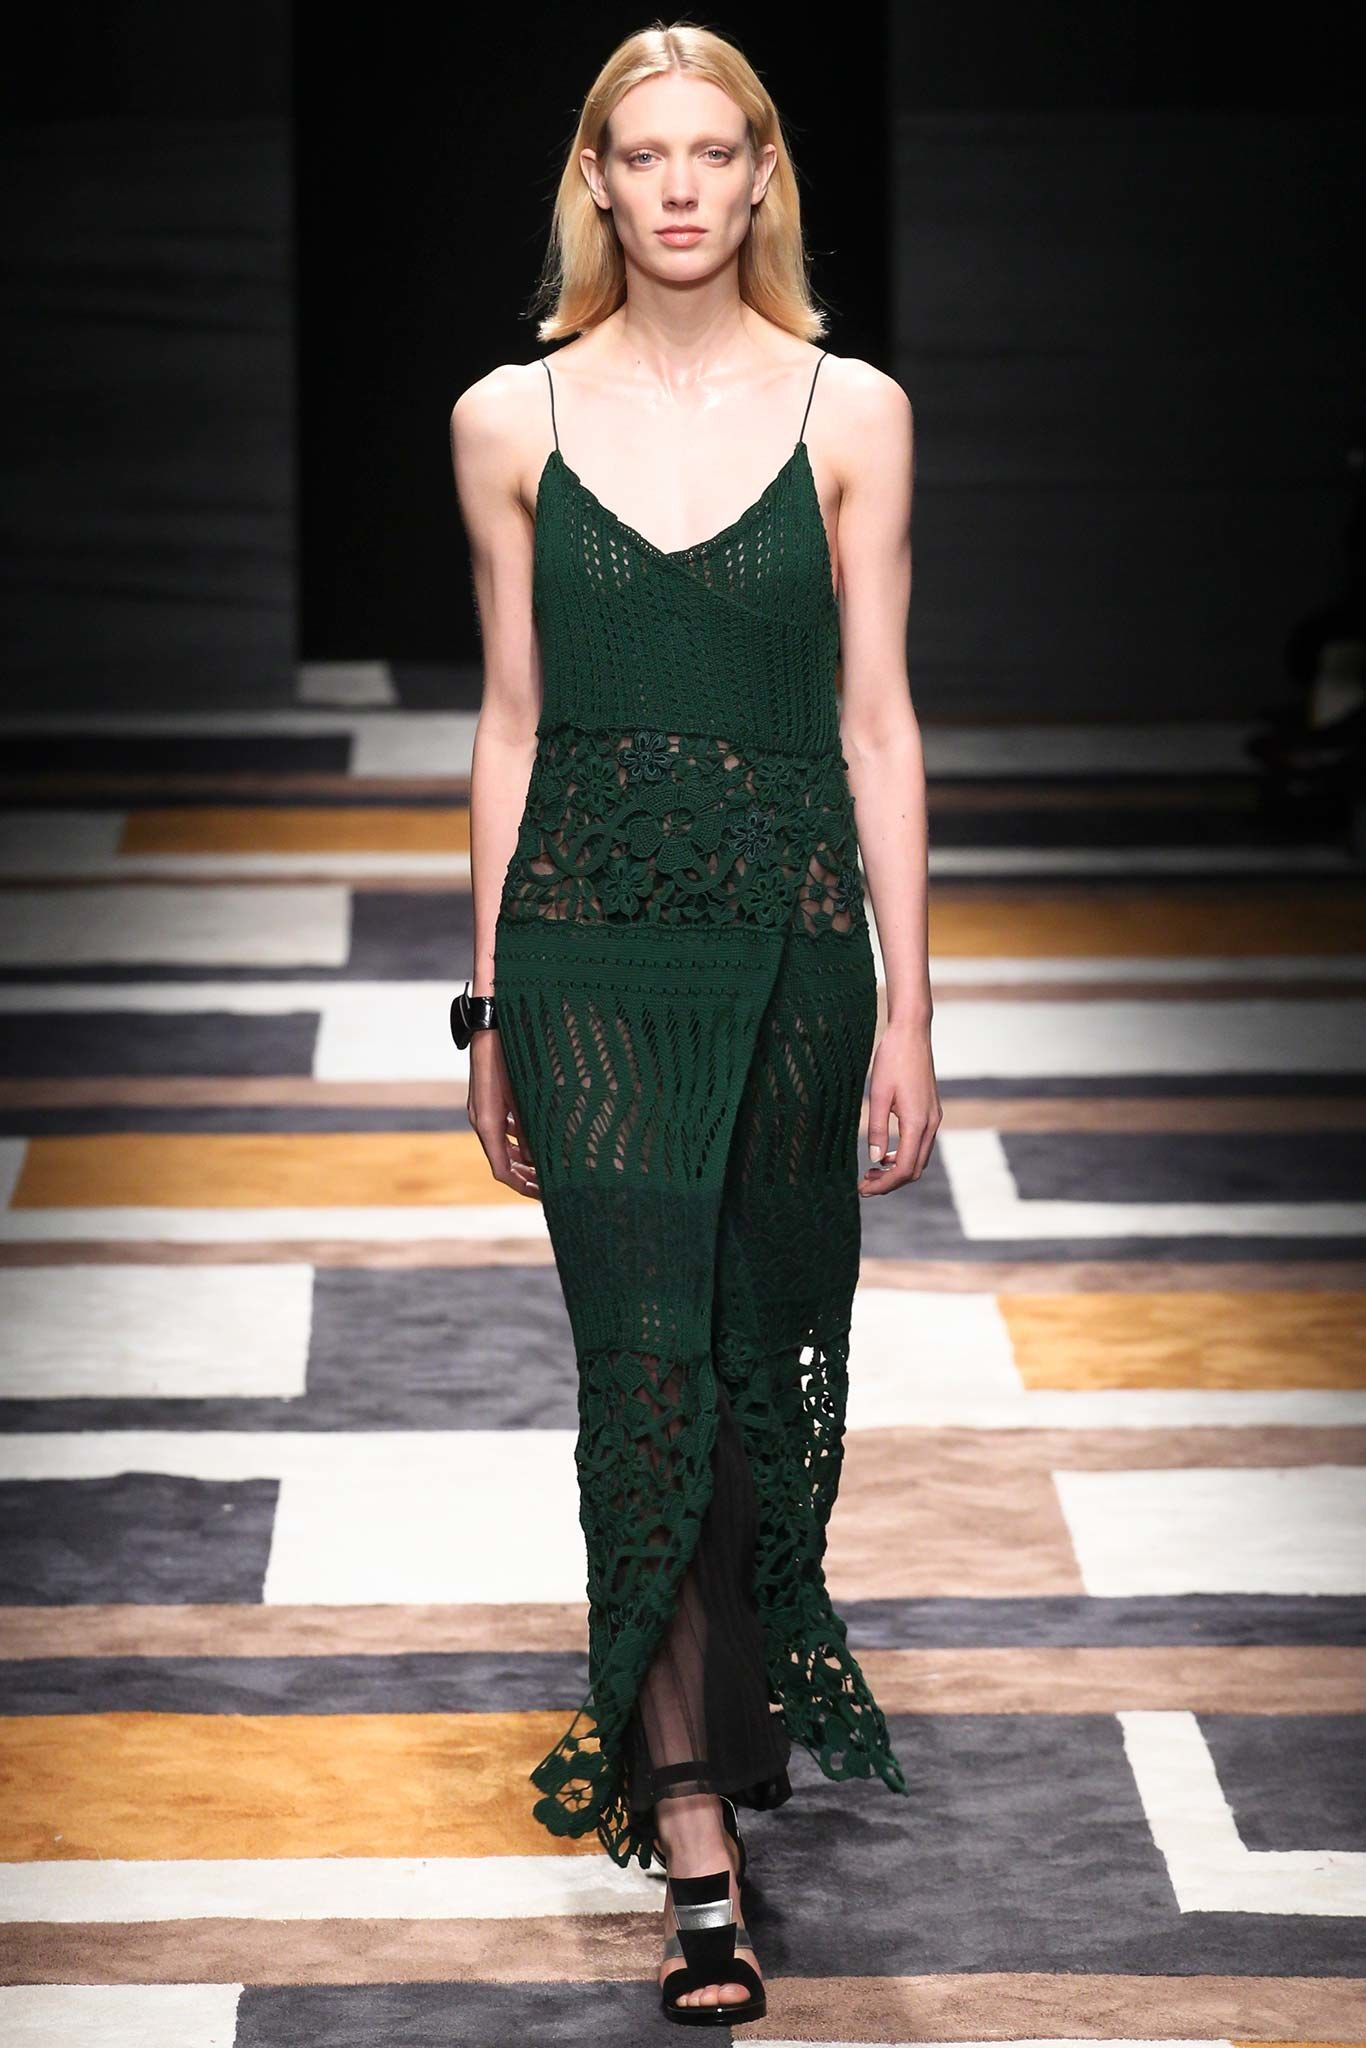 Salvatore Ferragamo Fall 2015 Ready-to-Wear Fashion Show - Annely Bouma